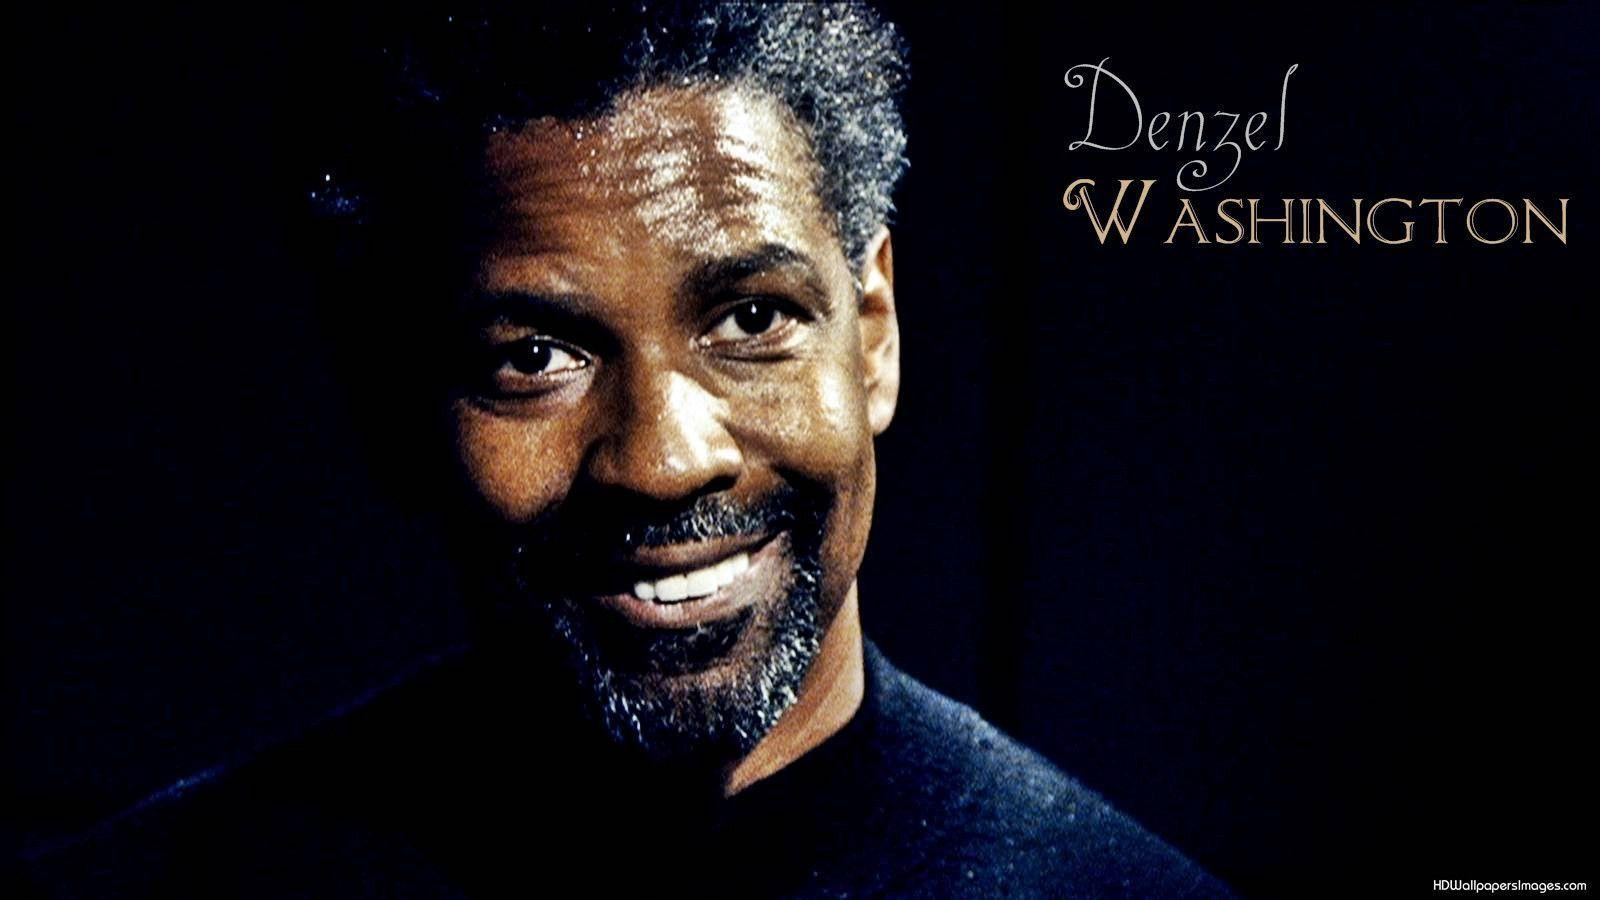 Denzel Washington 2013 | HD Wallpapers Images